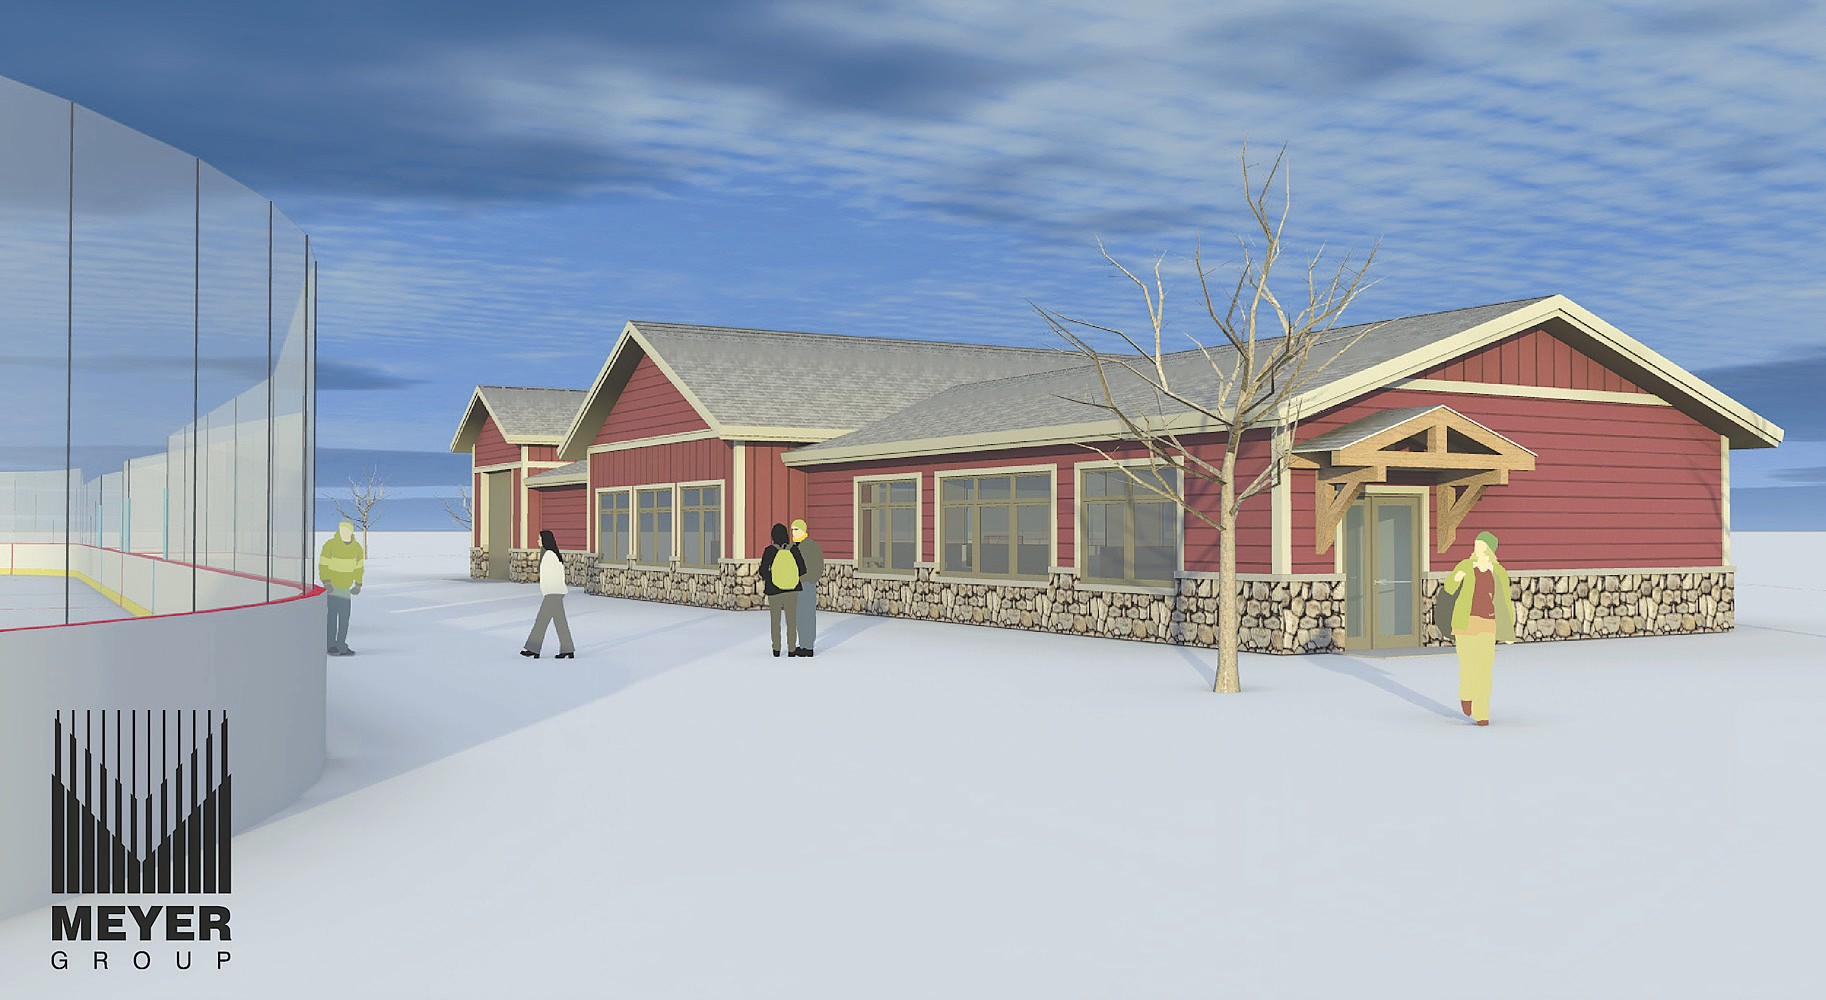 Hockey advocates propose $700,000 warming house | Cook ... on nicest ice house, igloo ice house, texans ice house, ice house construction, ice house history, ice house plans, 19th century ice house, old ice house, ice house trailers, ice house roof design, ice water house,